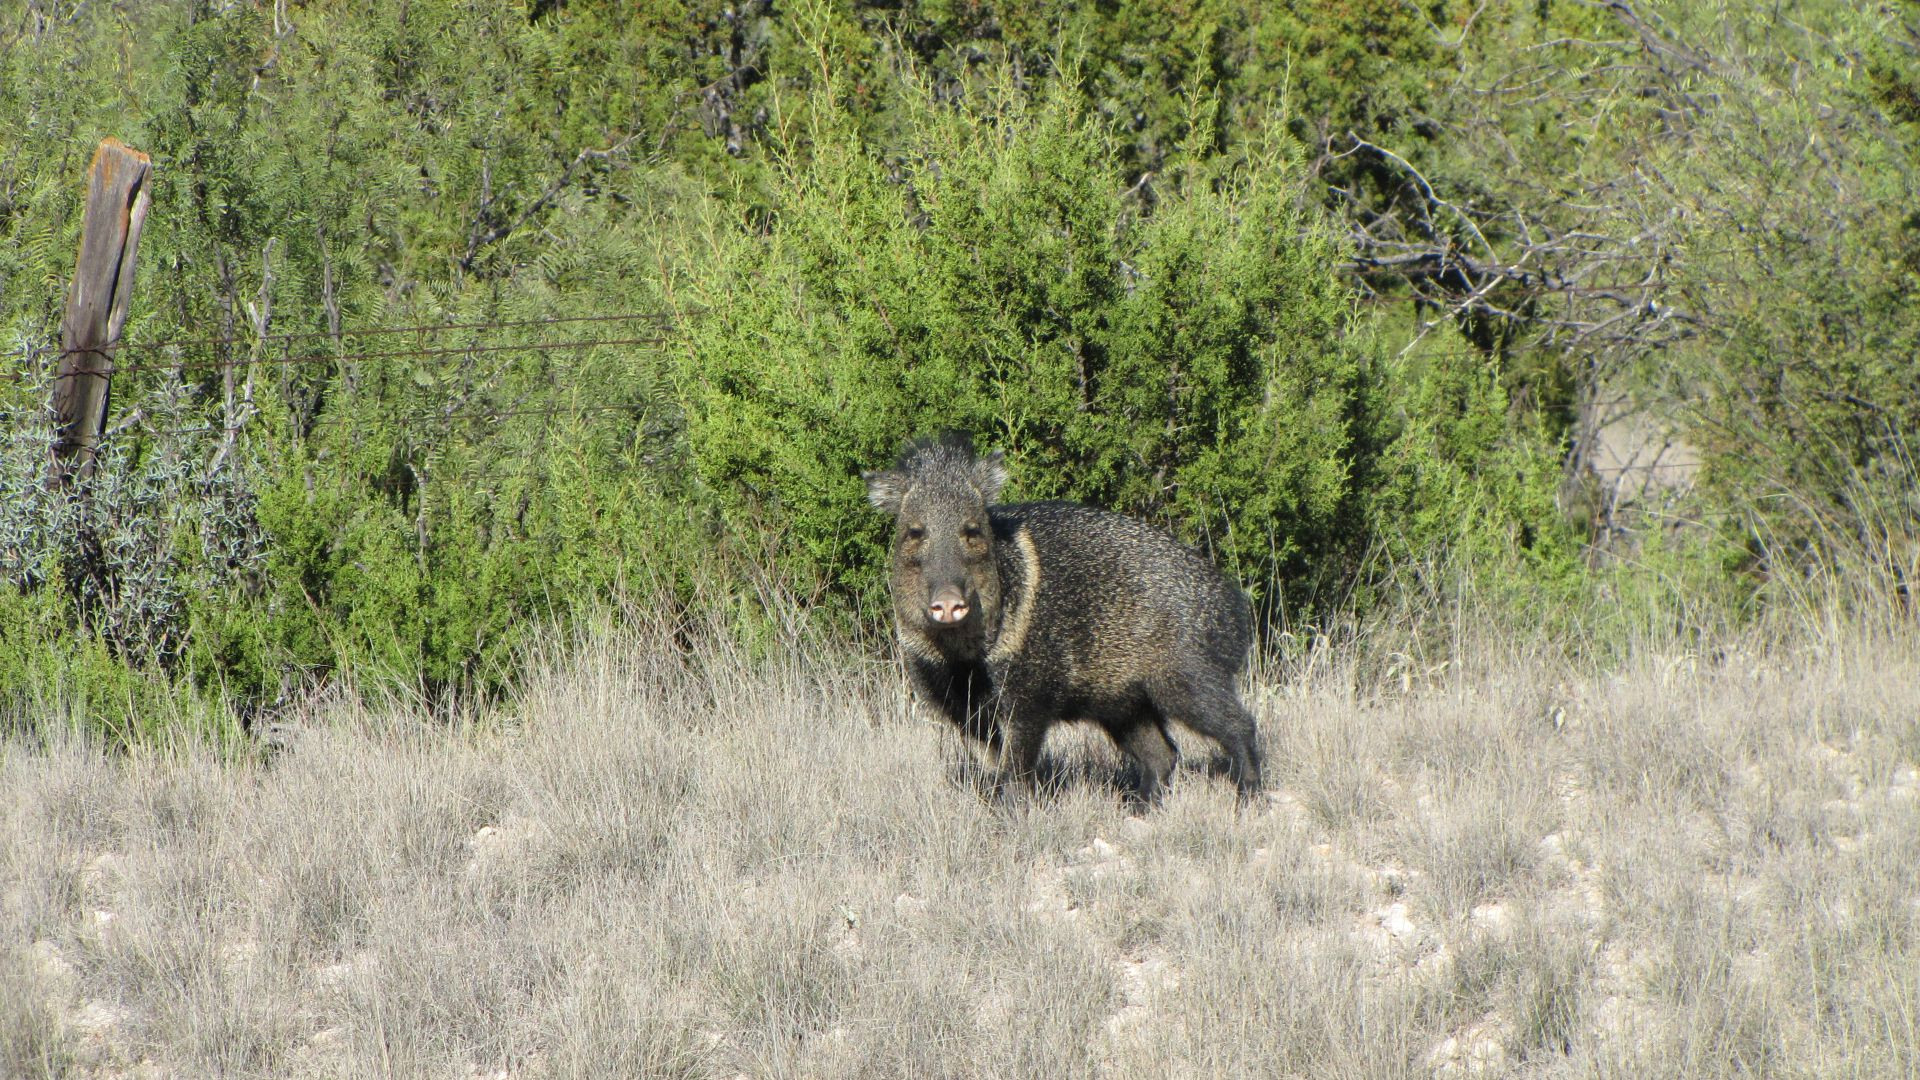 Nr Sanderson, TX, USA - this chap gave the distinct impression that he was going to charge until I rode off (he was protecting his family who are in the bushes - they're 'Javelinas')